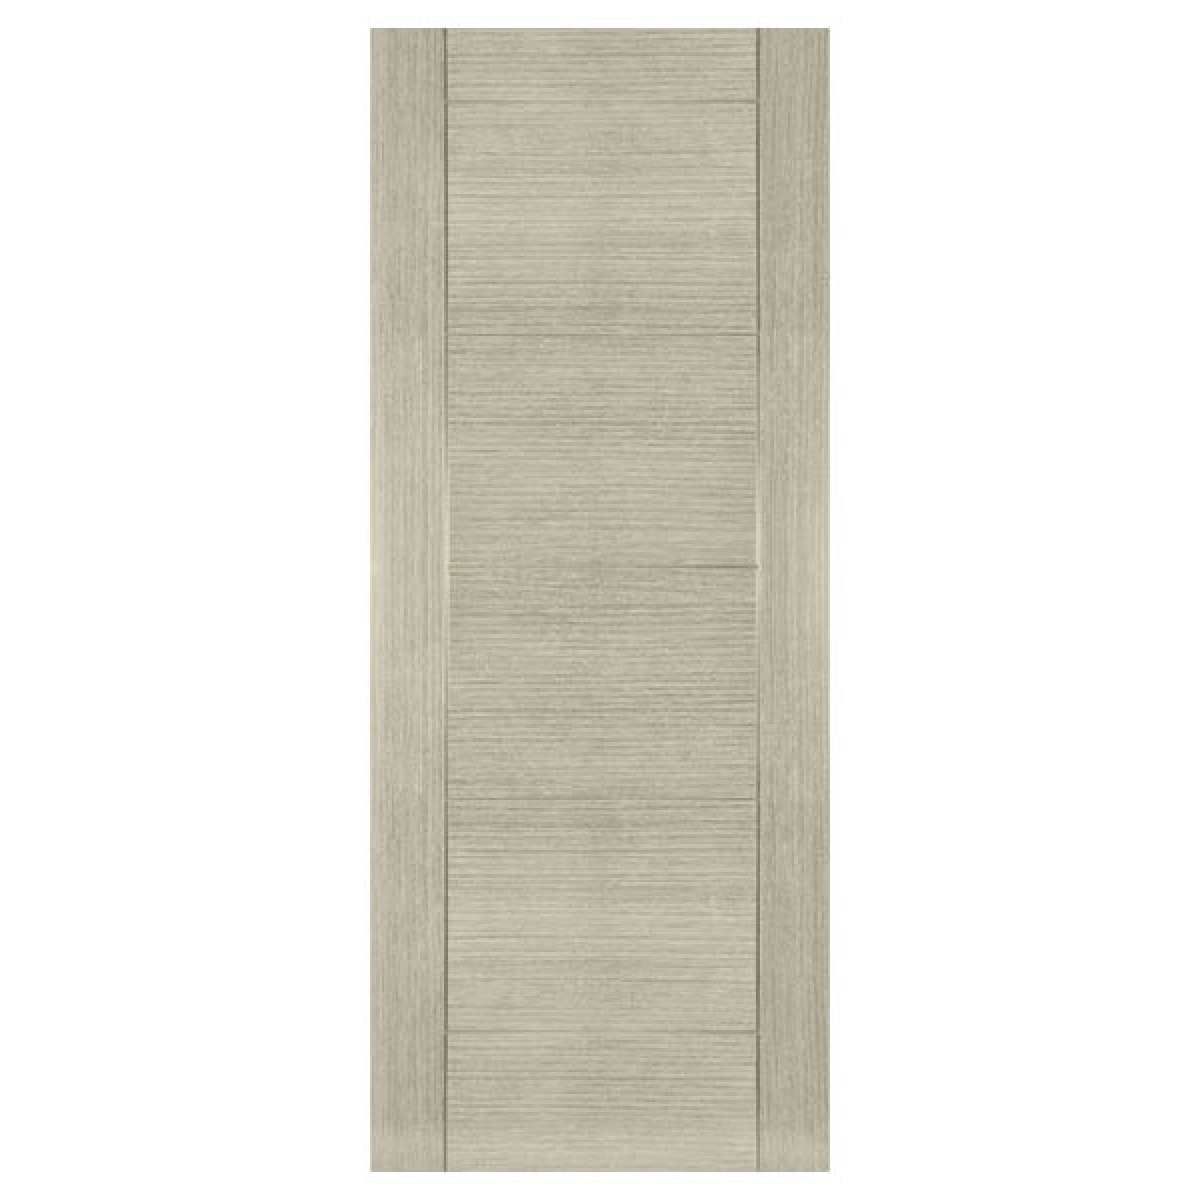 montreal light grey ash flat websters Image by Websters Timber